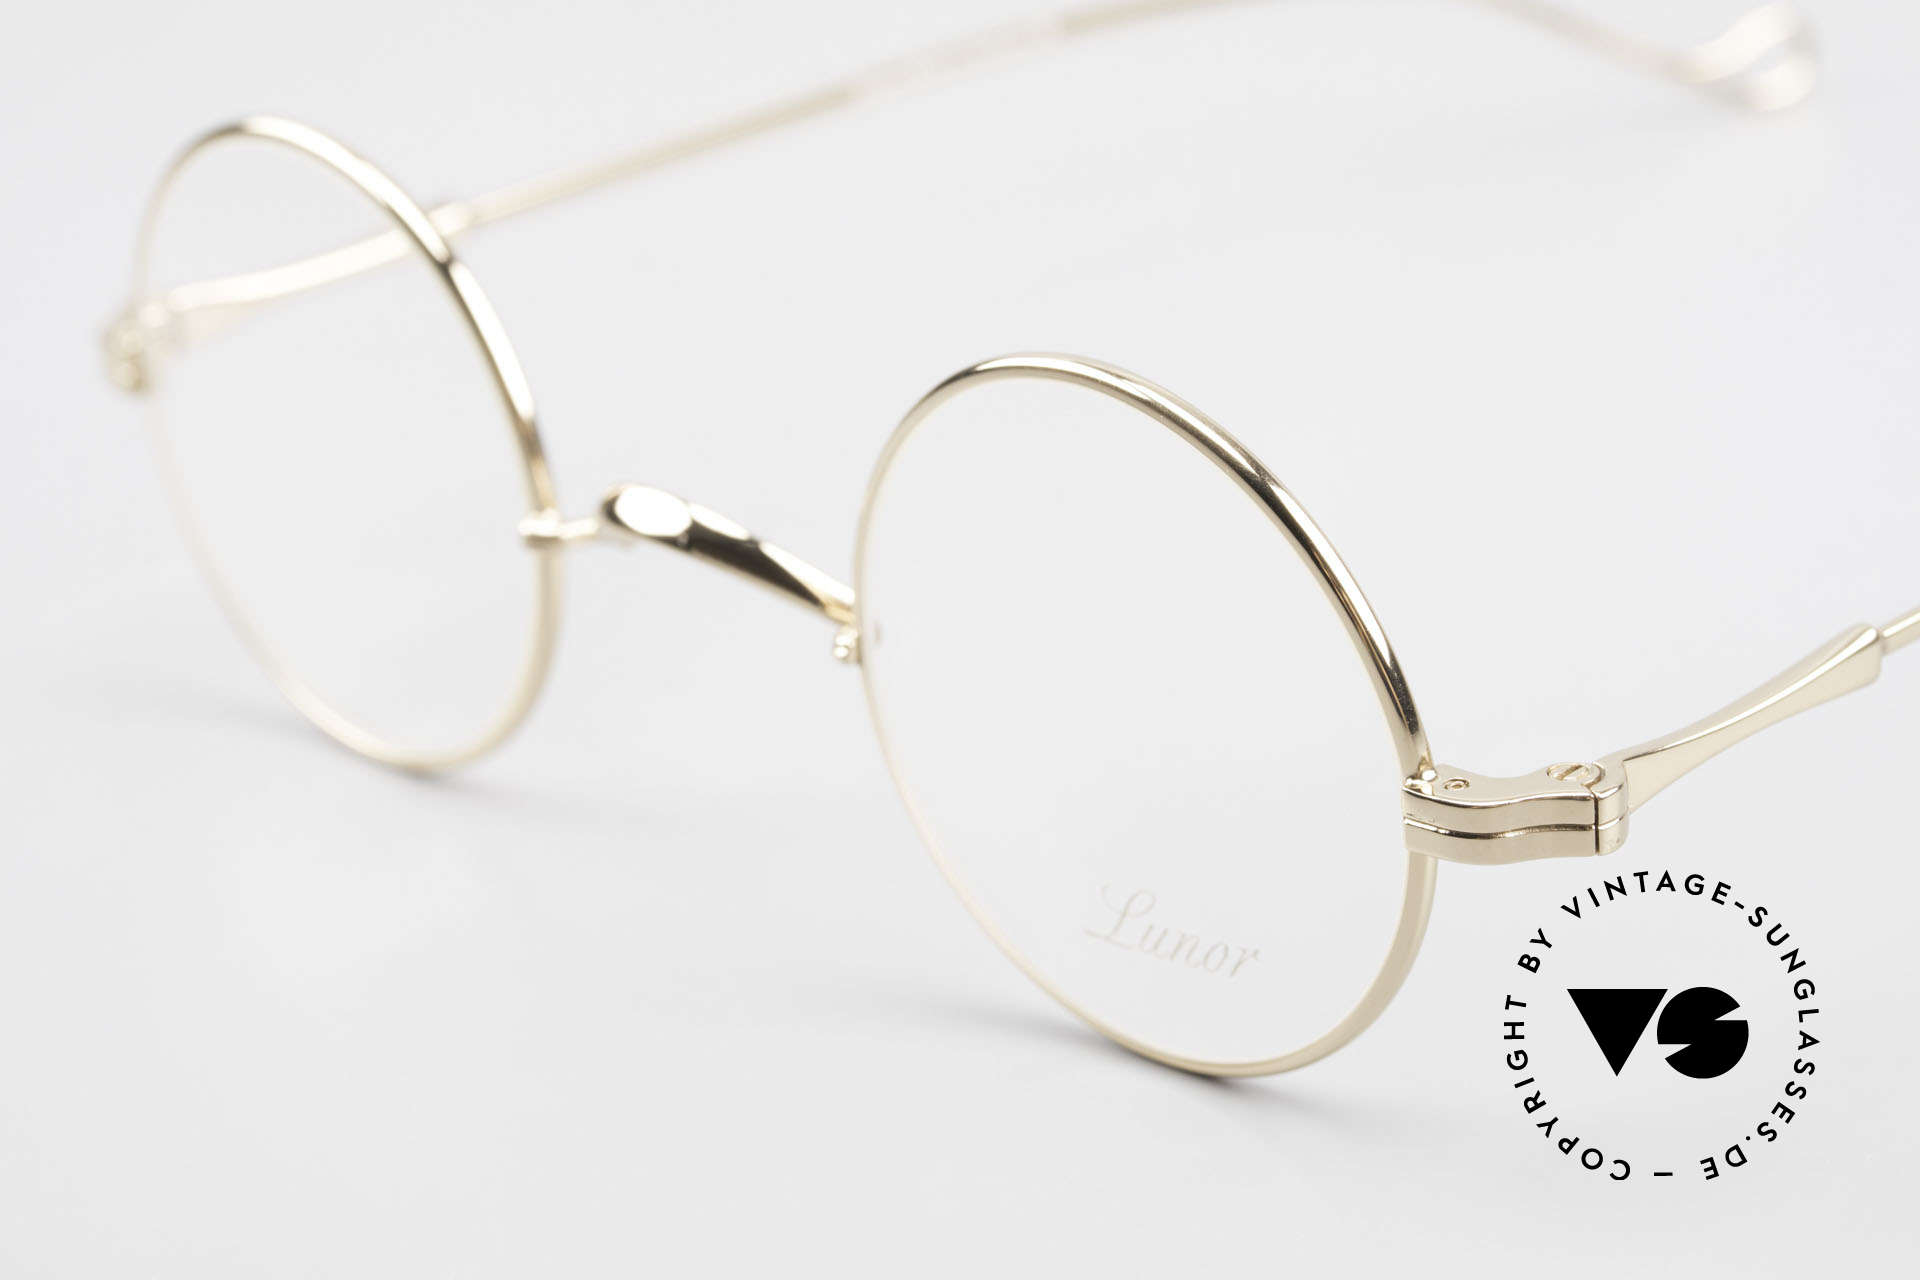 Lunor II 12 Small Round Gold Glasses, noble, classy, timeless = a genuine LUNOR ORIGINAL!, Made for Men and Women